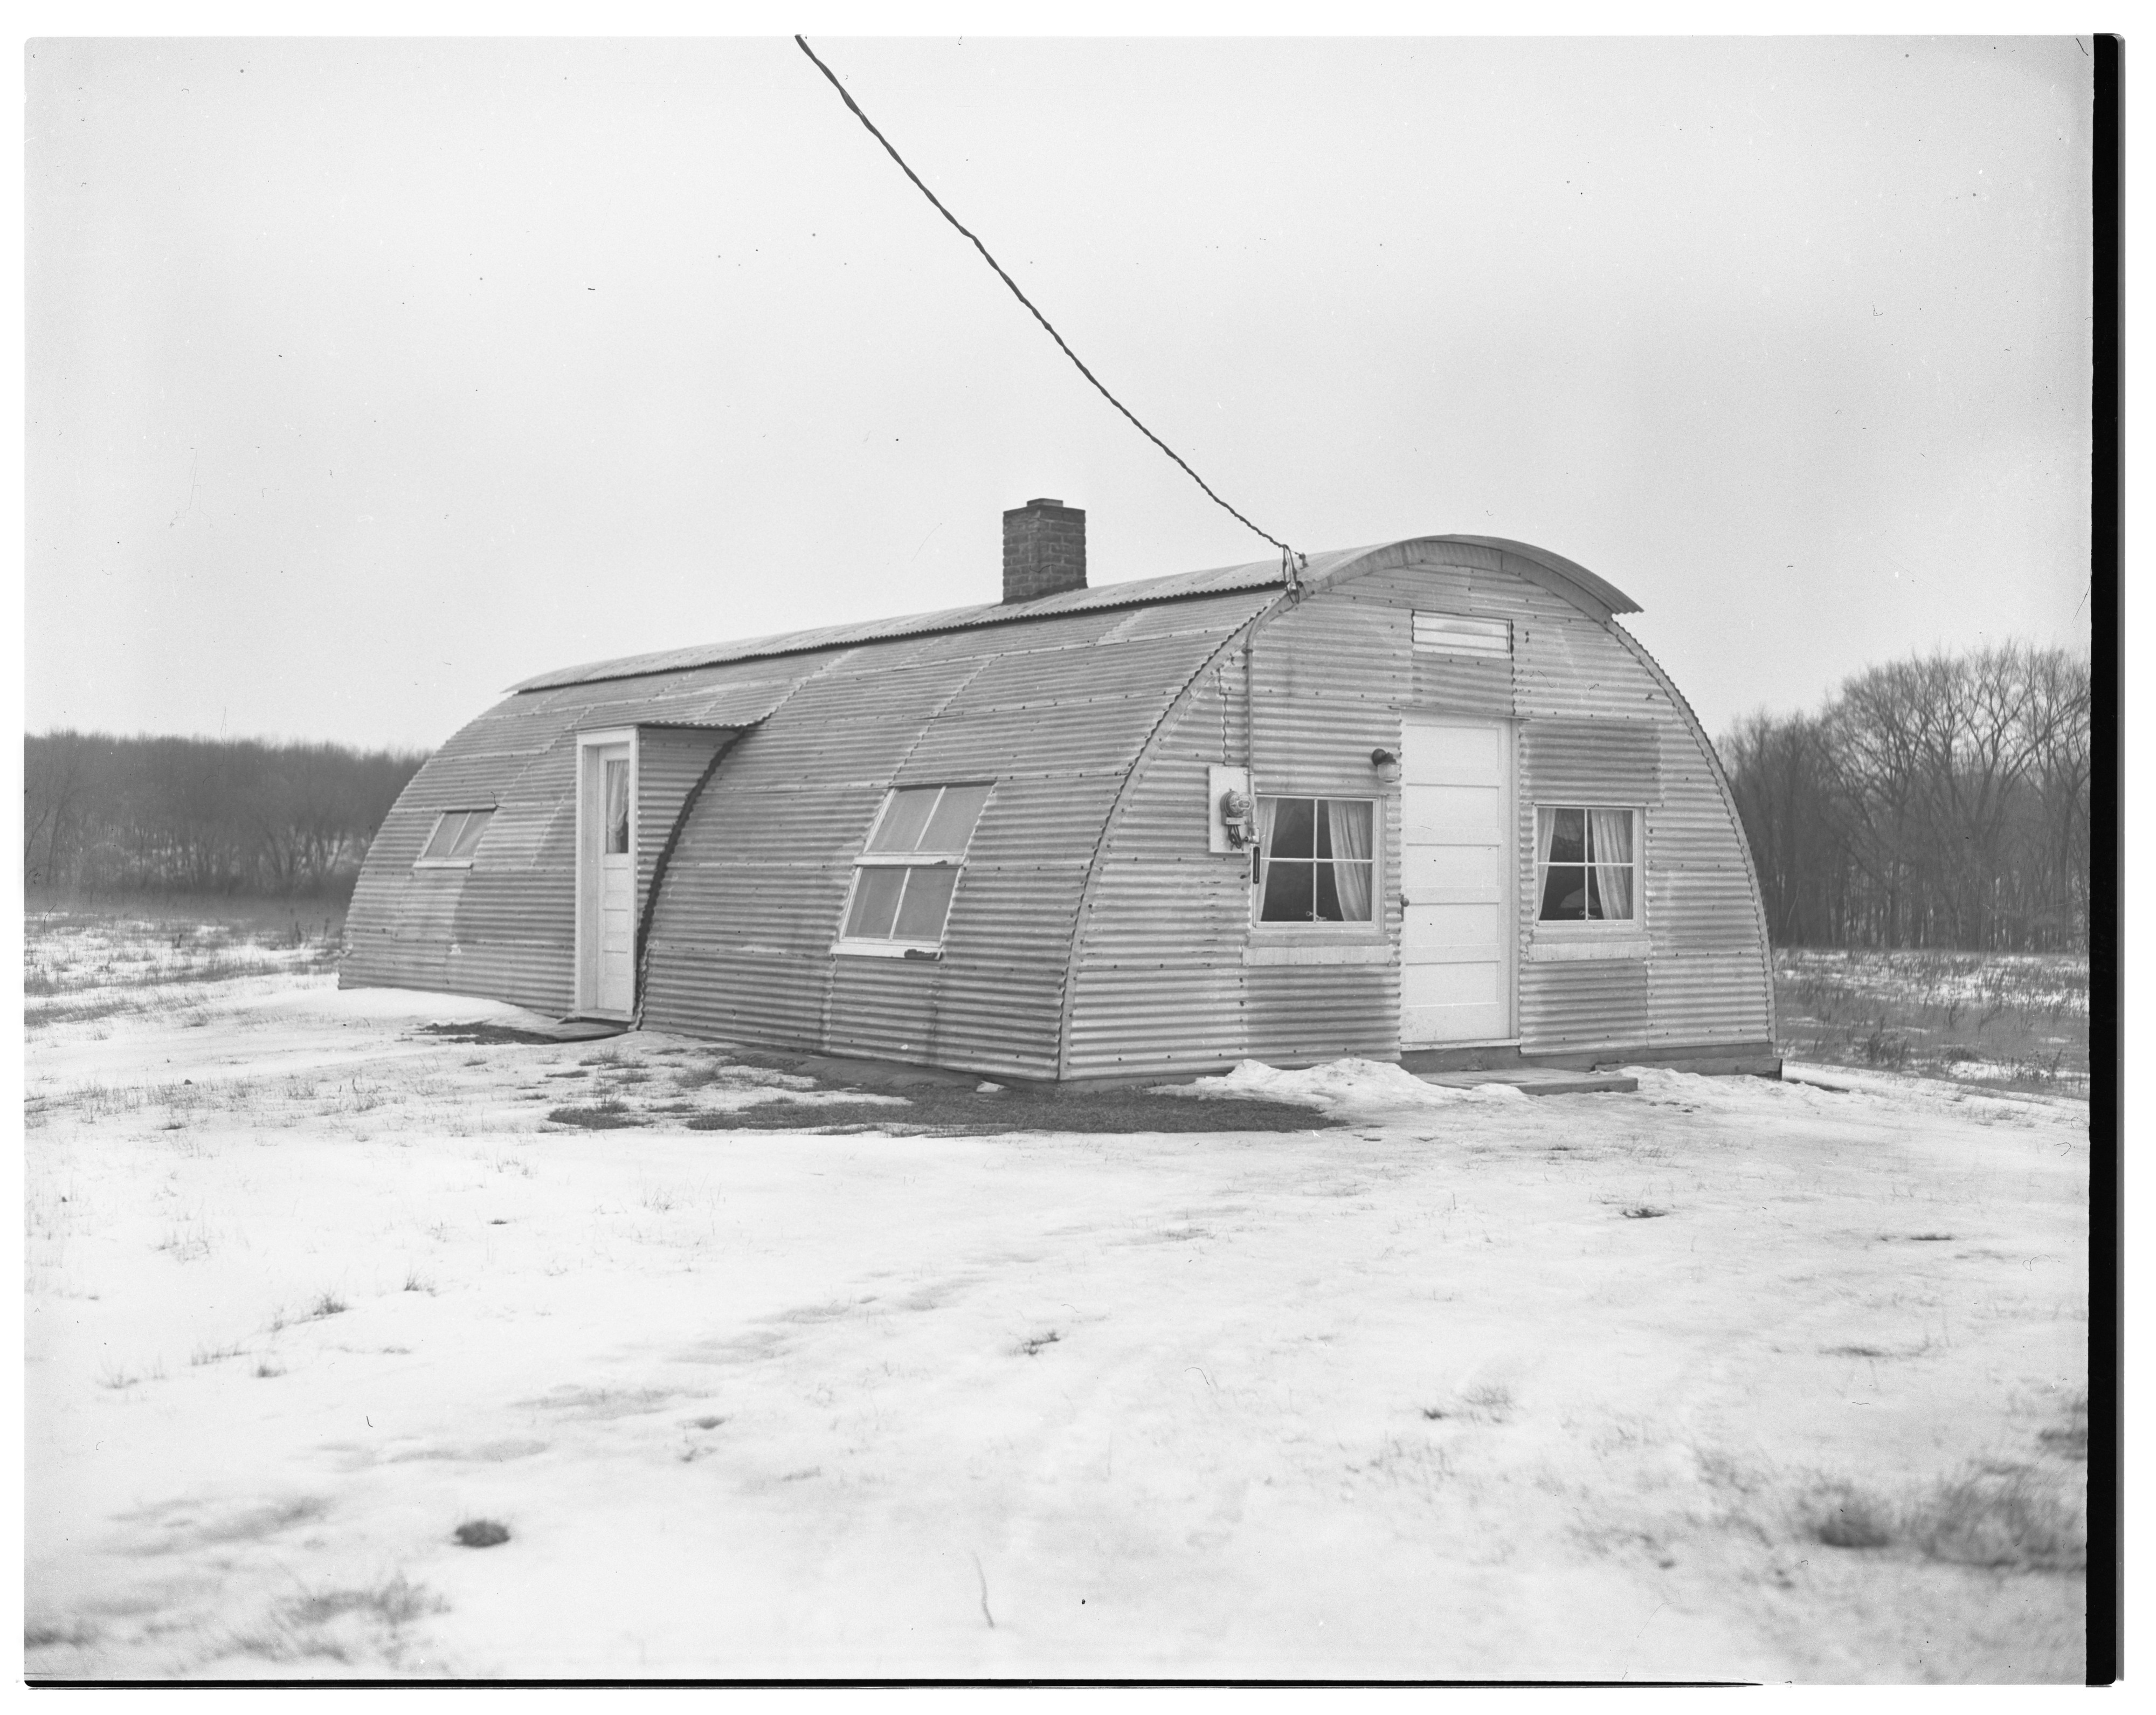 Fetching Quonset Hut Ann February Quonset Hut Ann February Ann Arbor District Library Quonset Hut Homes Detroit Quonset Hut Homes Images curbed Quonset Hut Homes